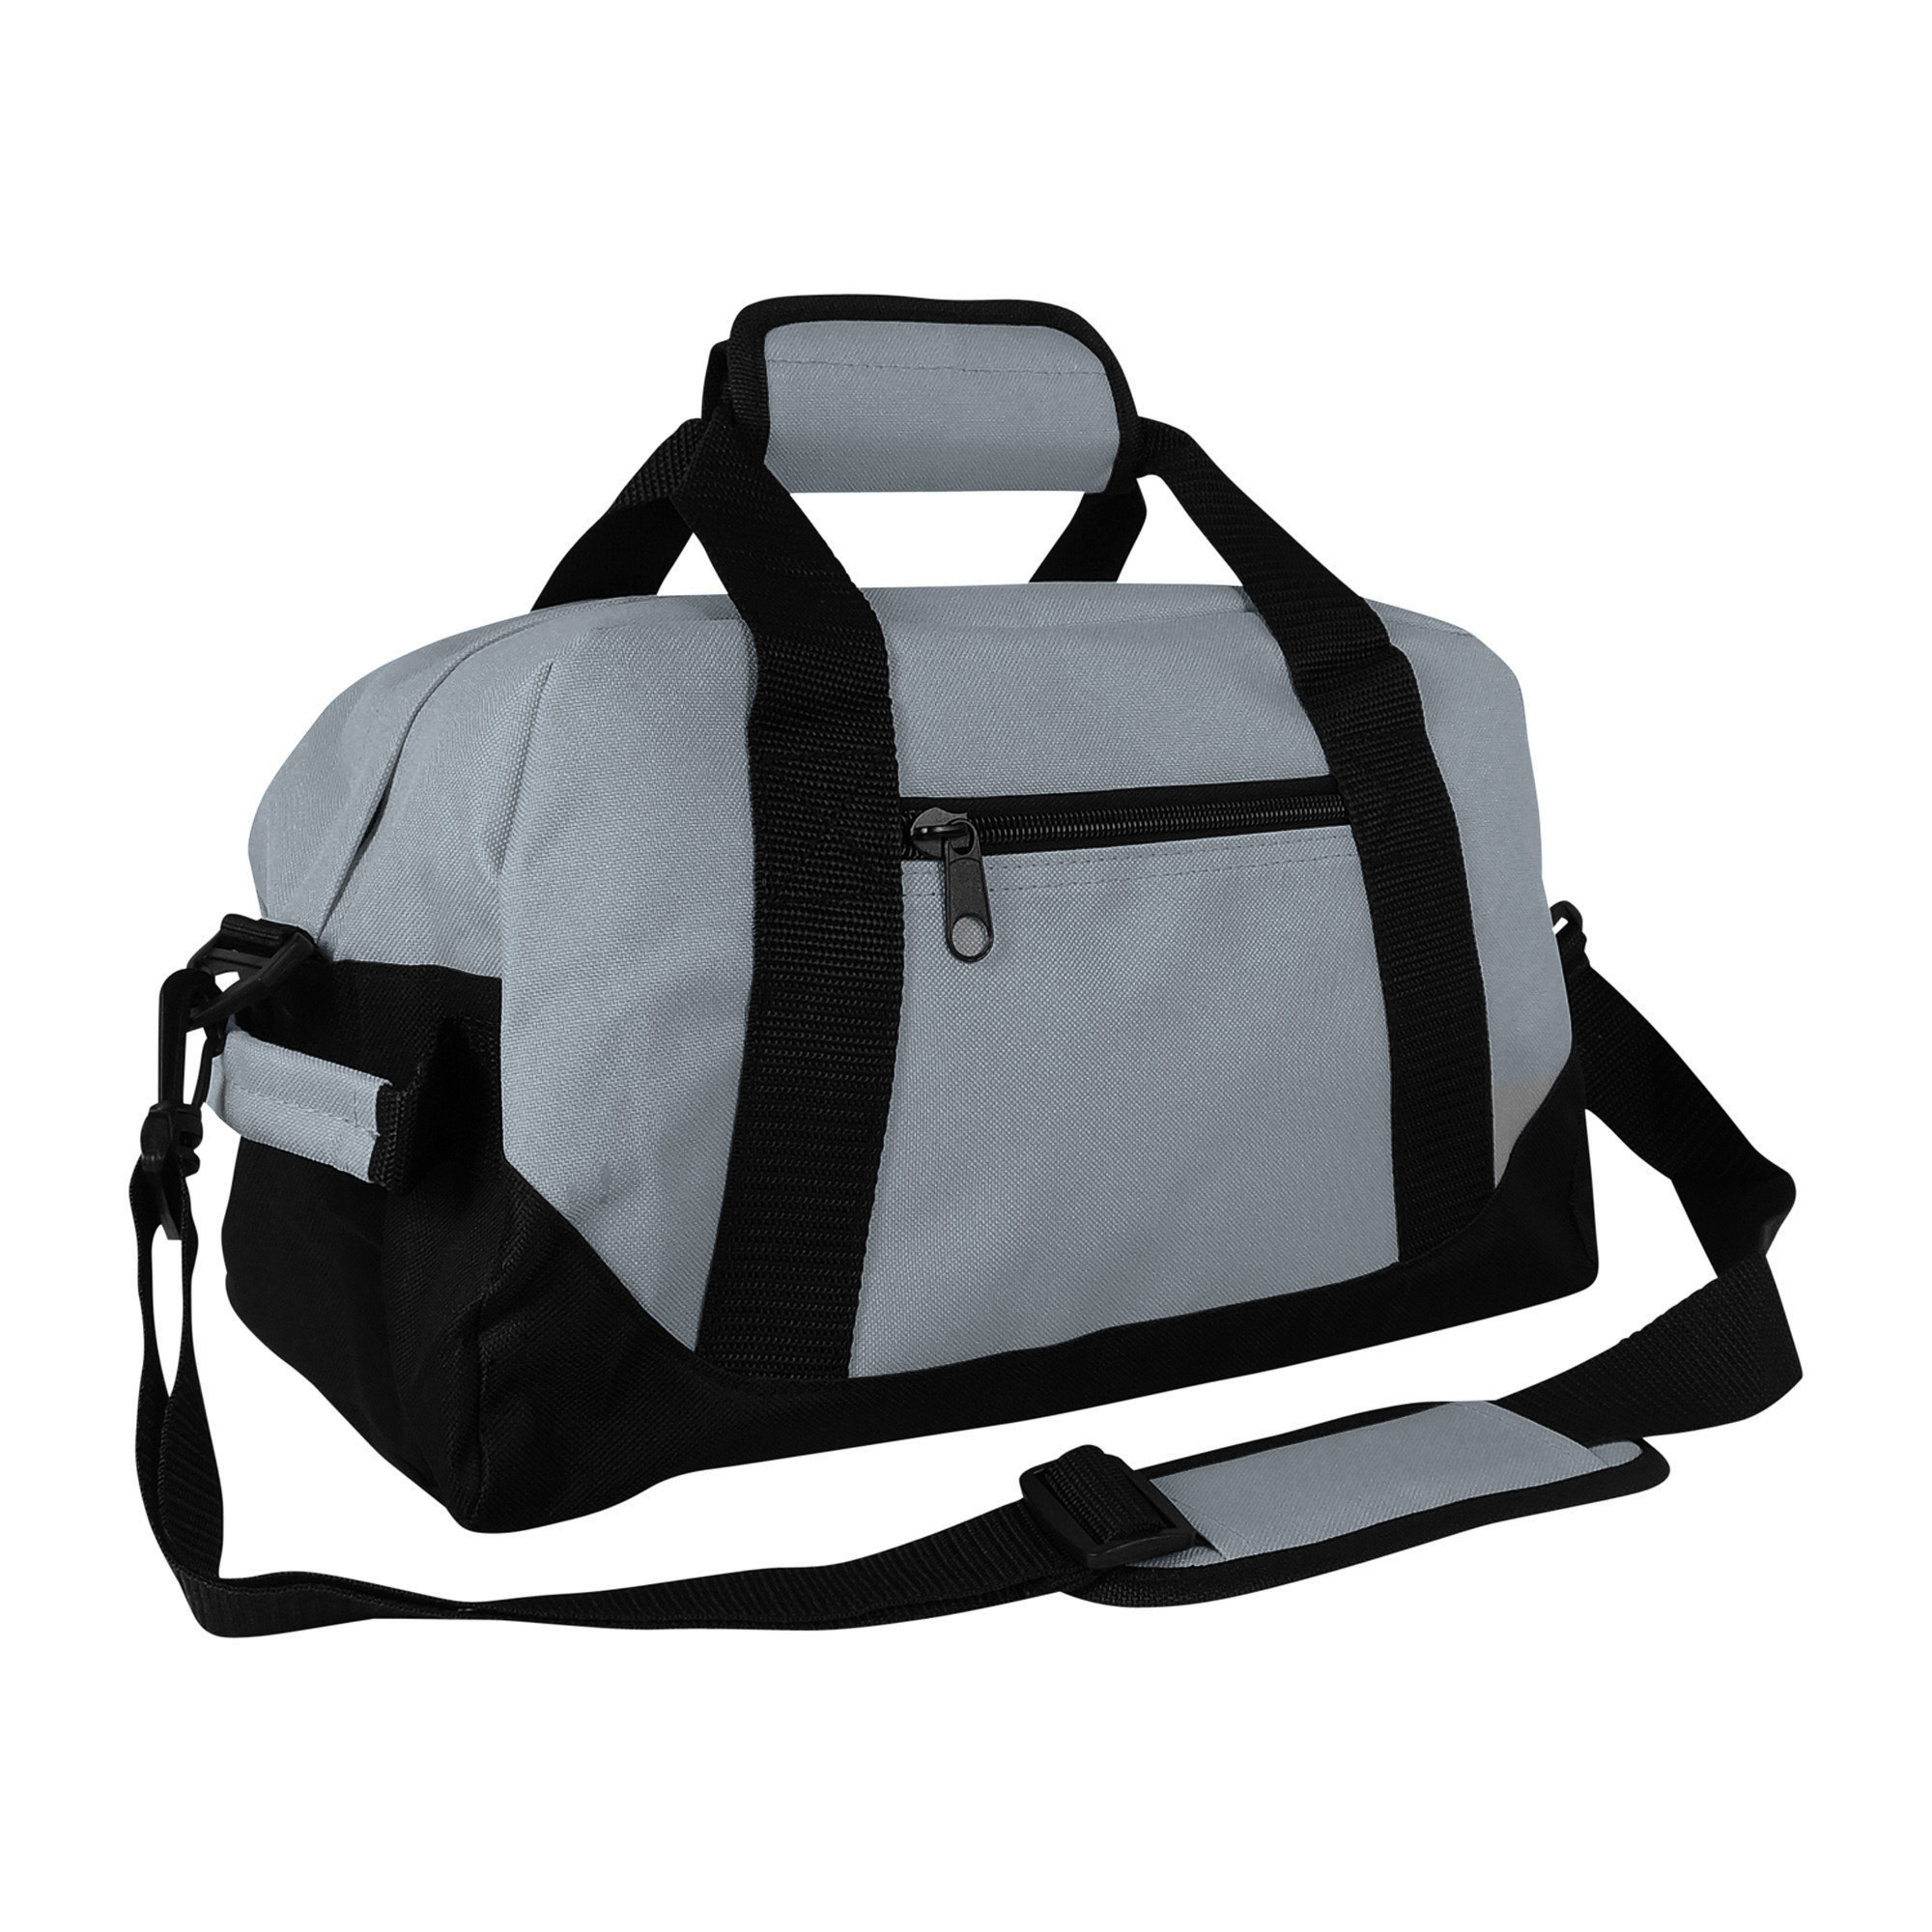 Dalix 14 Small Duffel Bag Gym Duffle Two Tone In Gray With Shoulder Strap